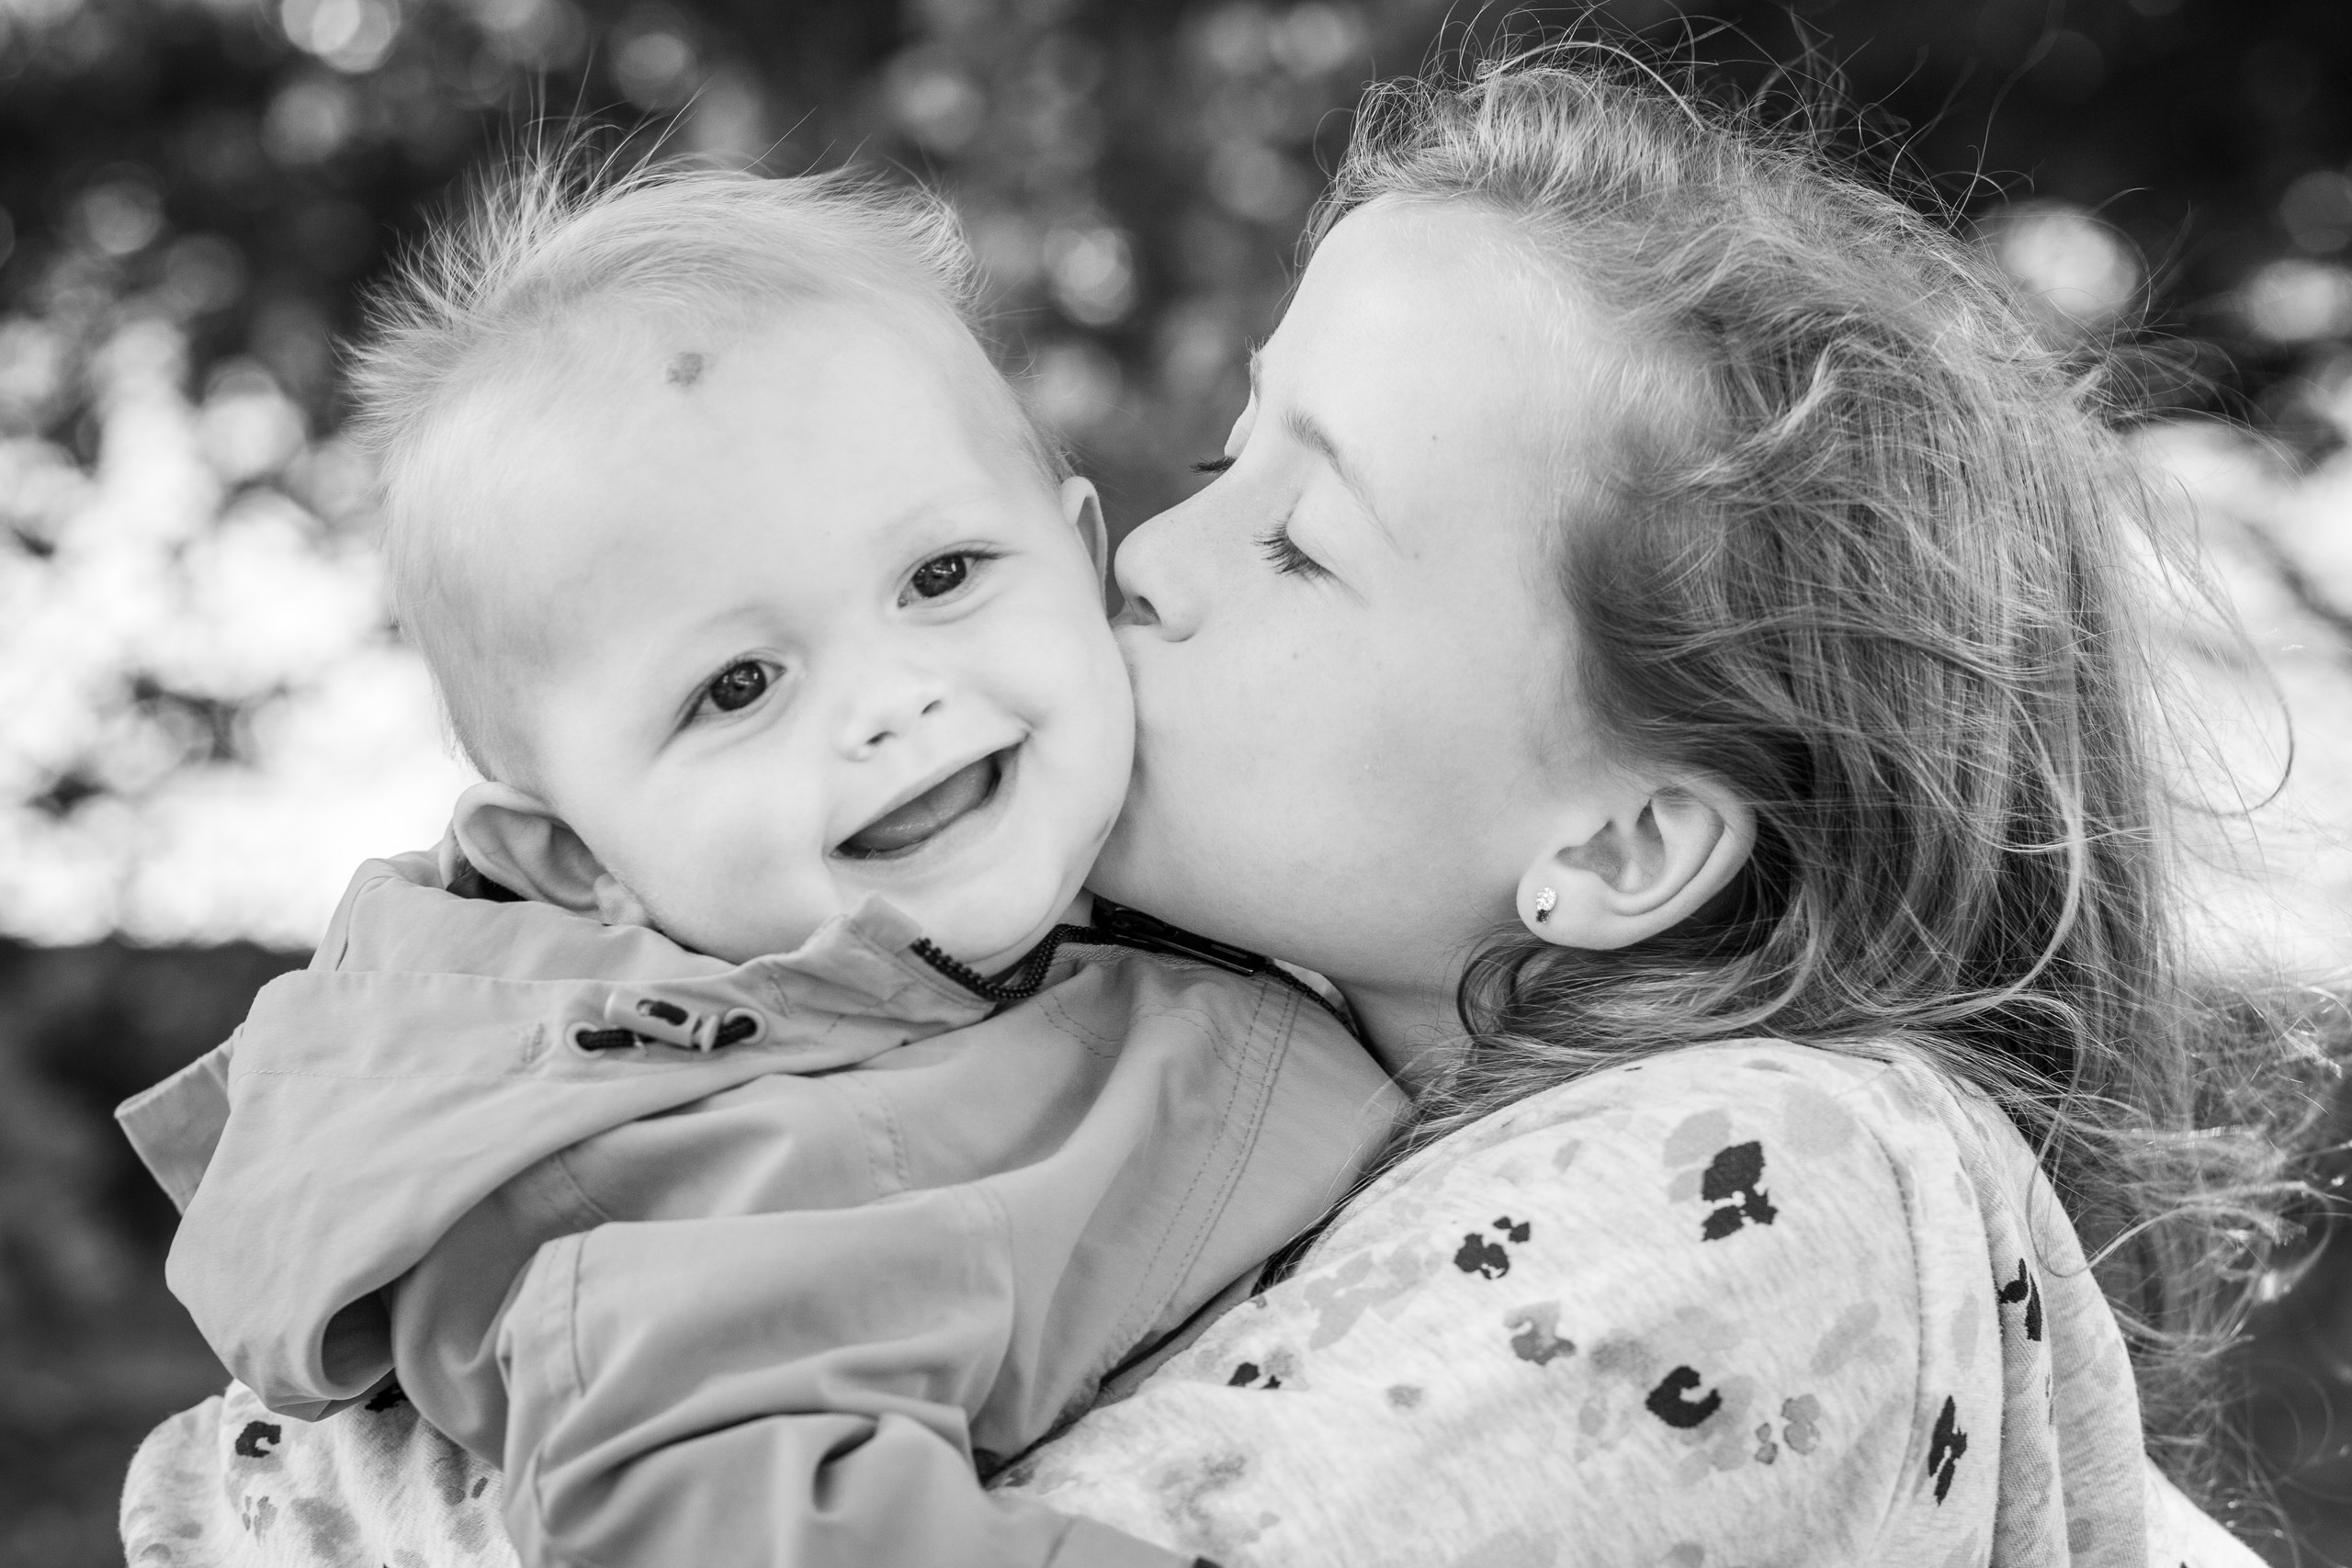 Swansea brother and sister kiss in a black and white photograph